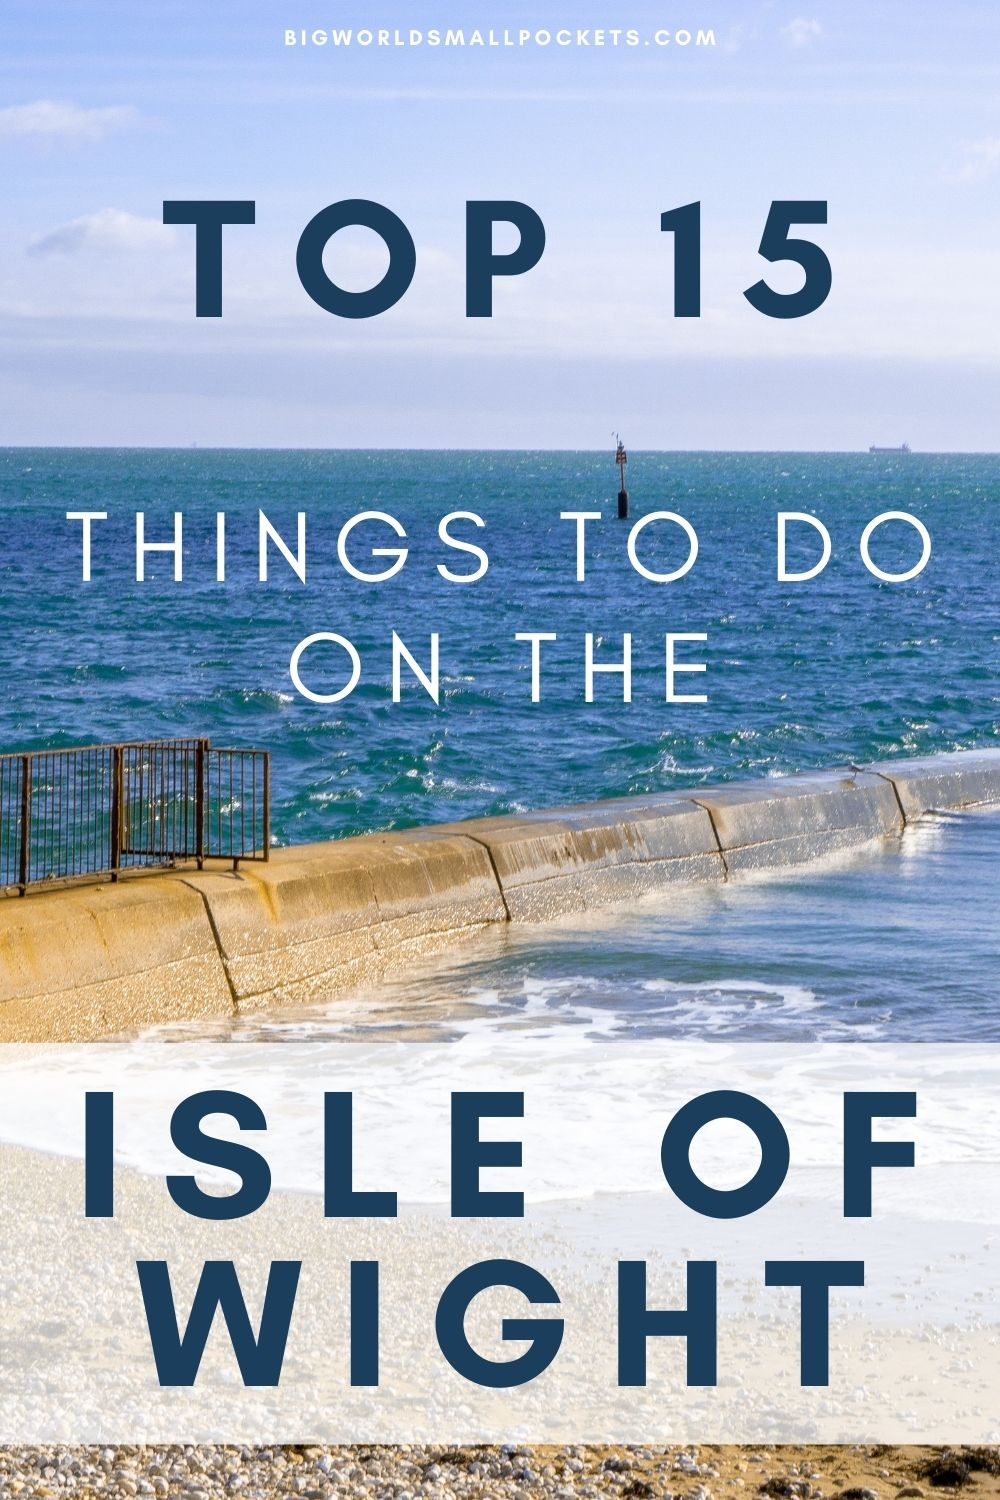 Best 15 Things To Do On The Isle of Wight, UK